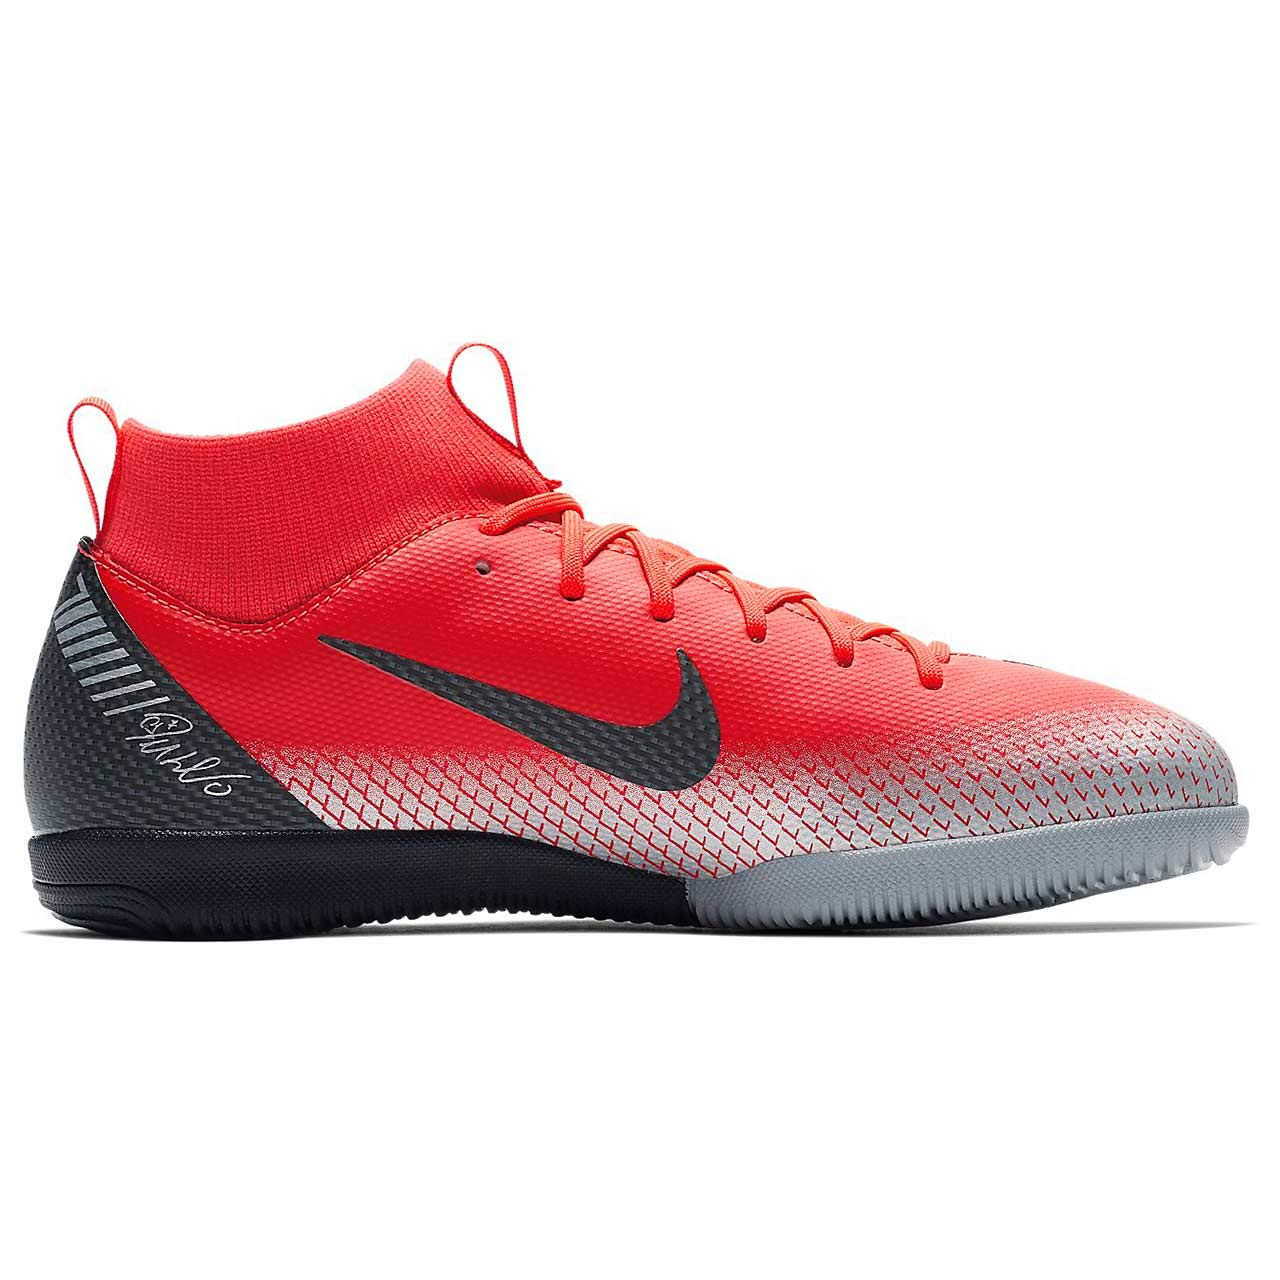 Nike Youth CR7 Jr SuperflyX 6 Academy Indoor Shoes